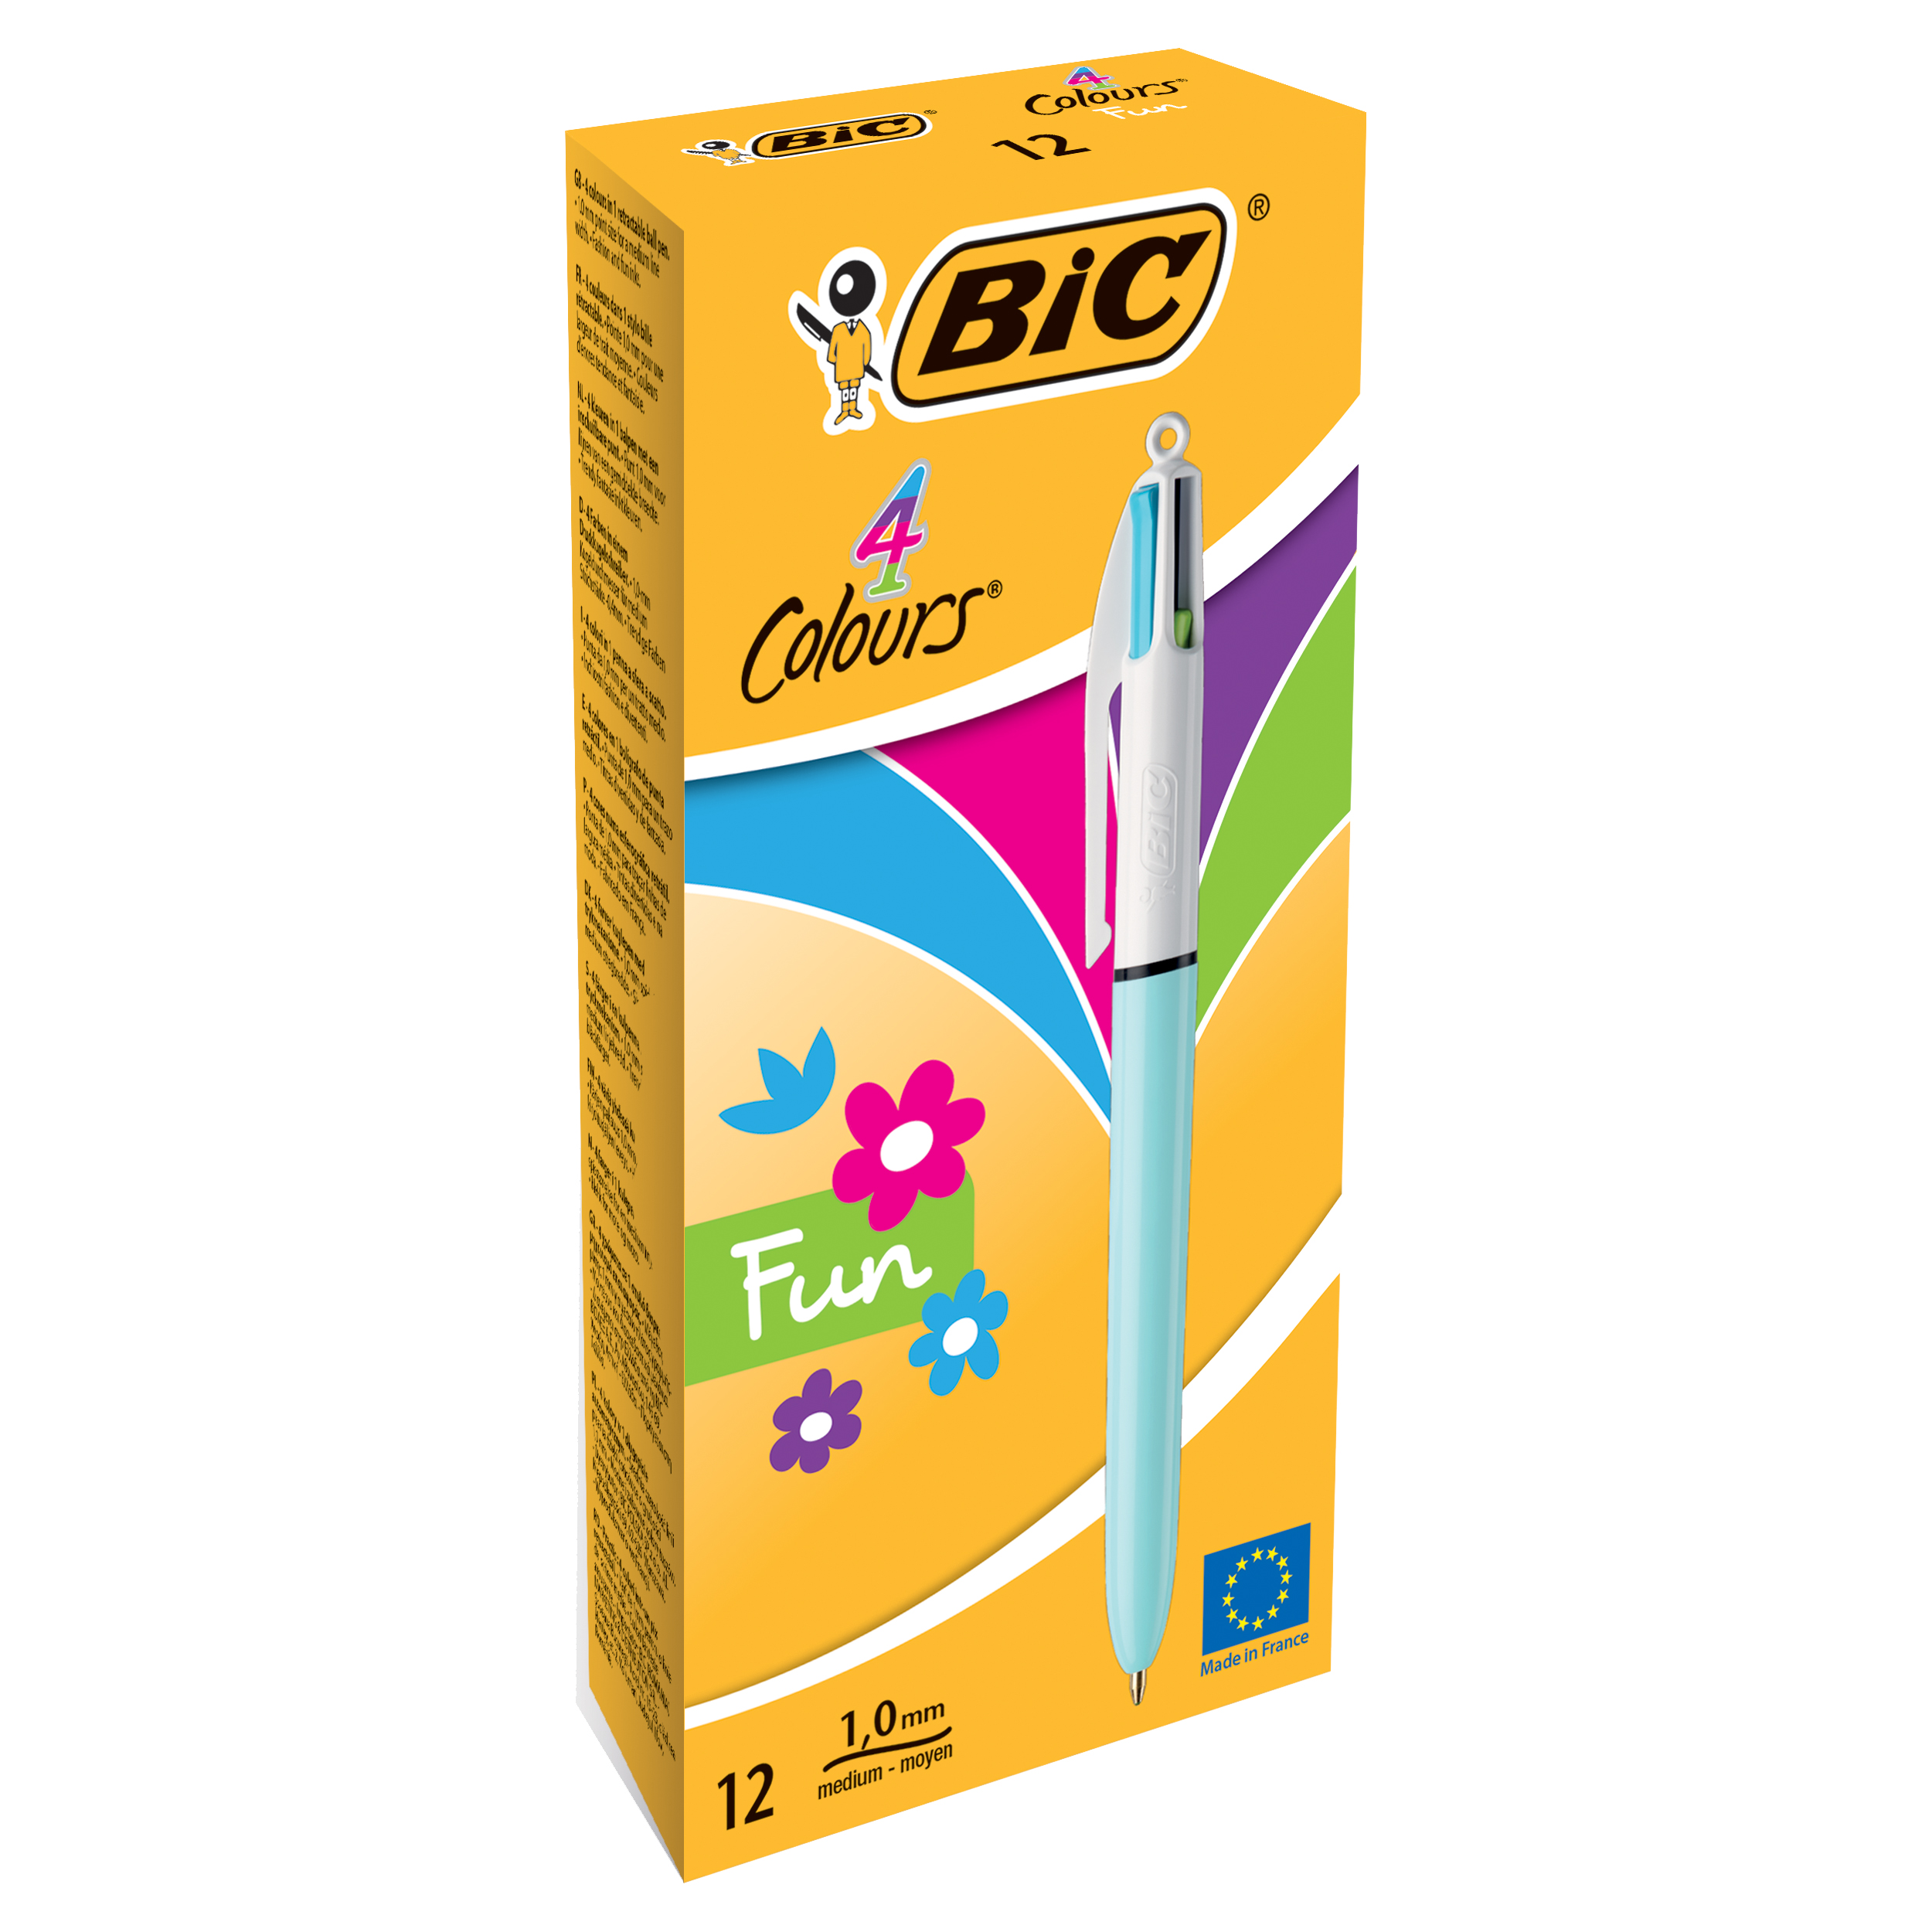 Bic 4-Colour Fun Ball Pen 1.0mm Tip 0.32mm Line Pink Purple Turquoise Lime Green Ref 887777 Pack 12